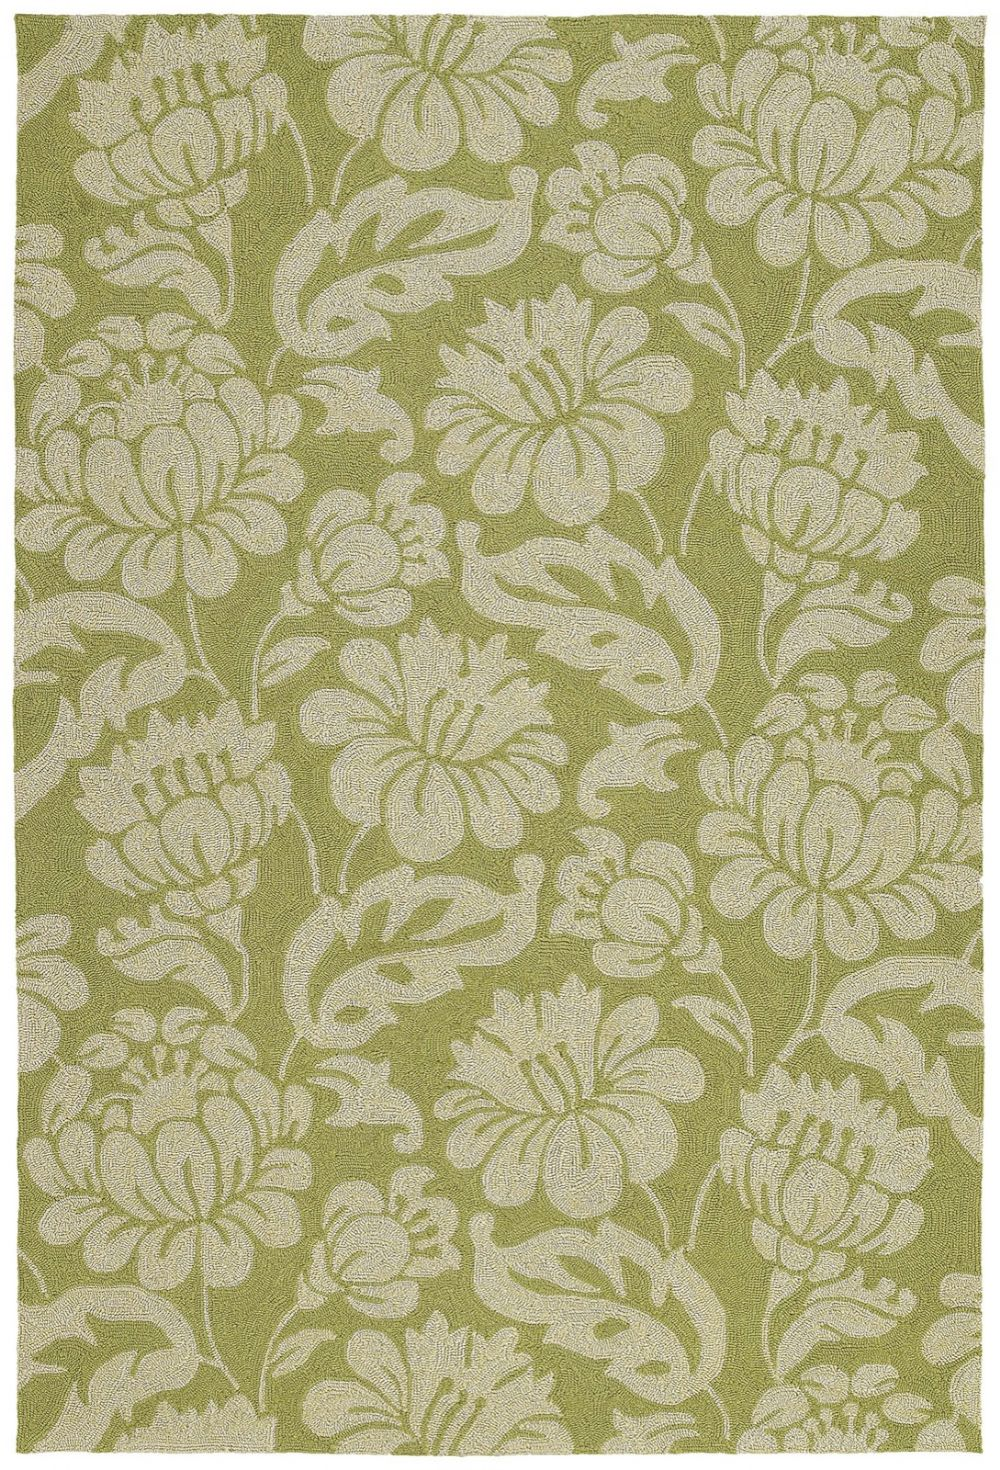 Kaleen Habitat Country Floral Area Rug Collection Rugpal